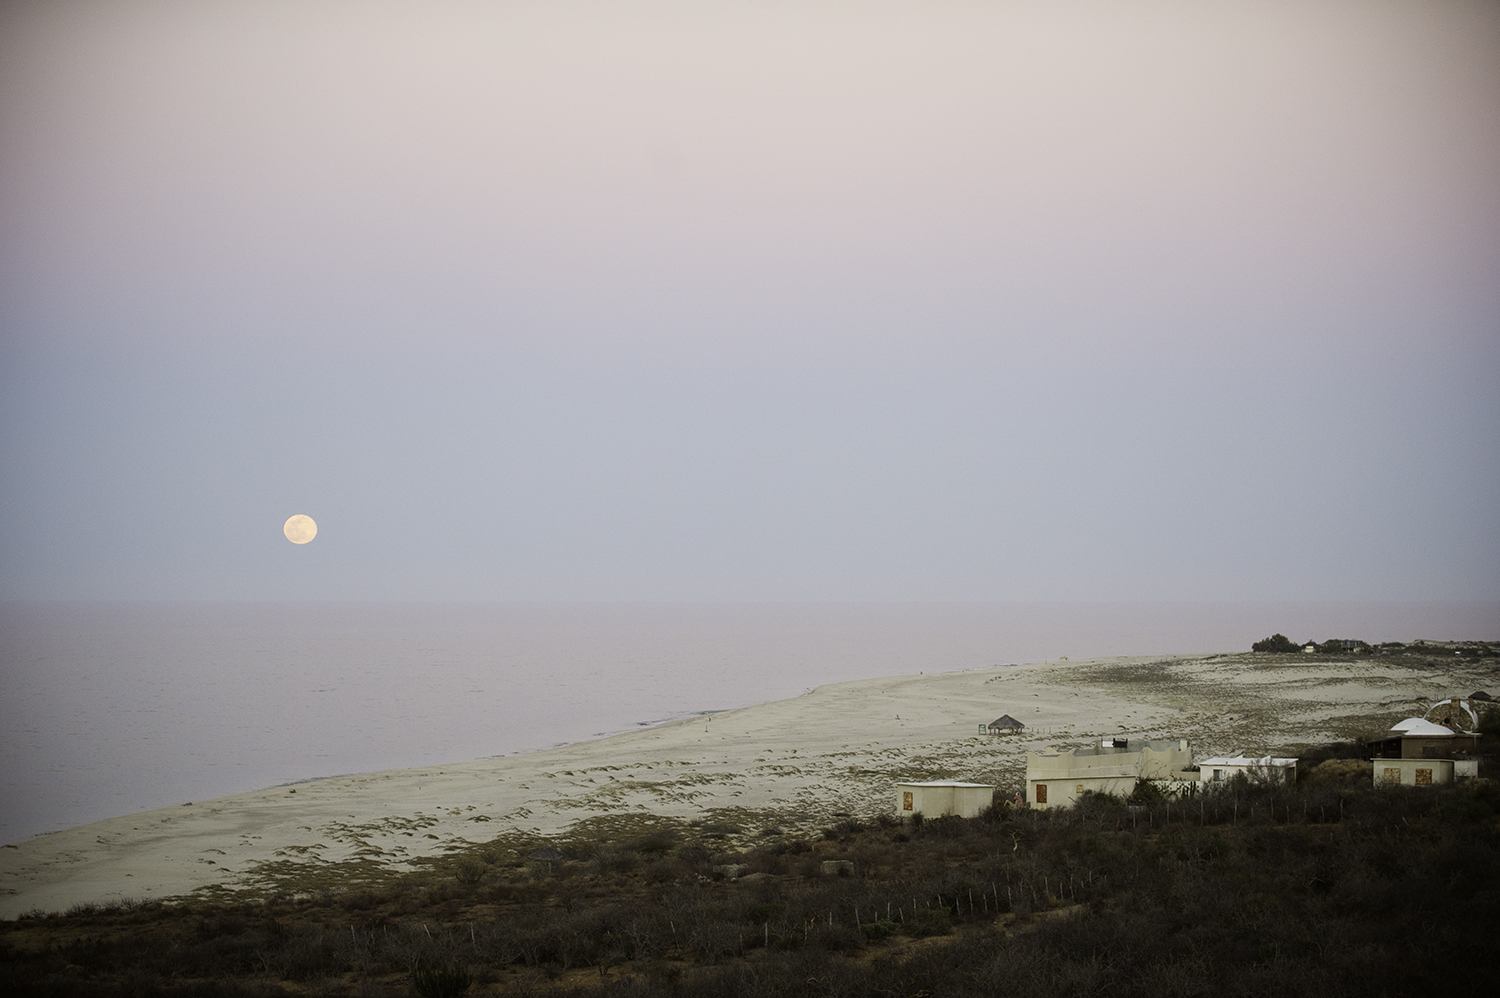 baja evening scape moon.jpg